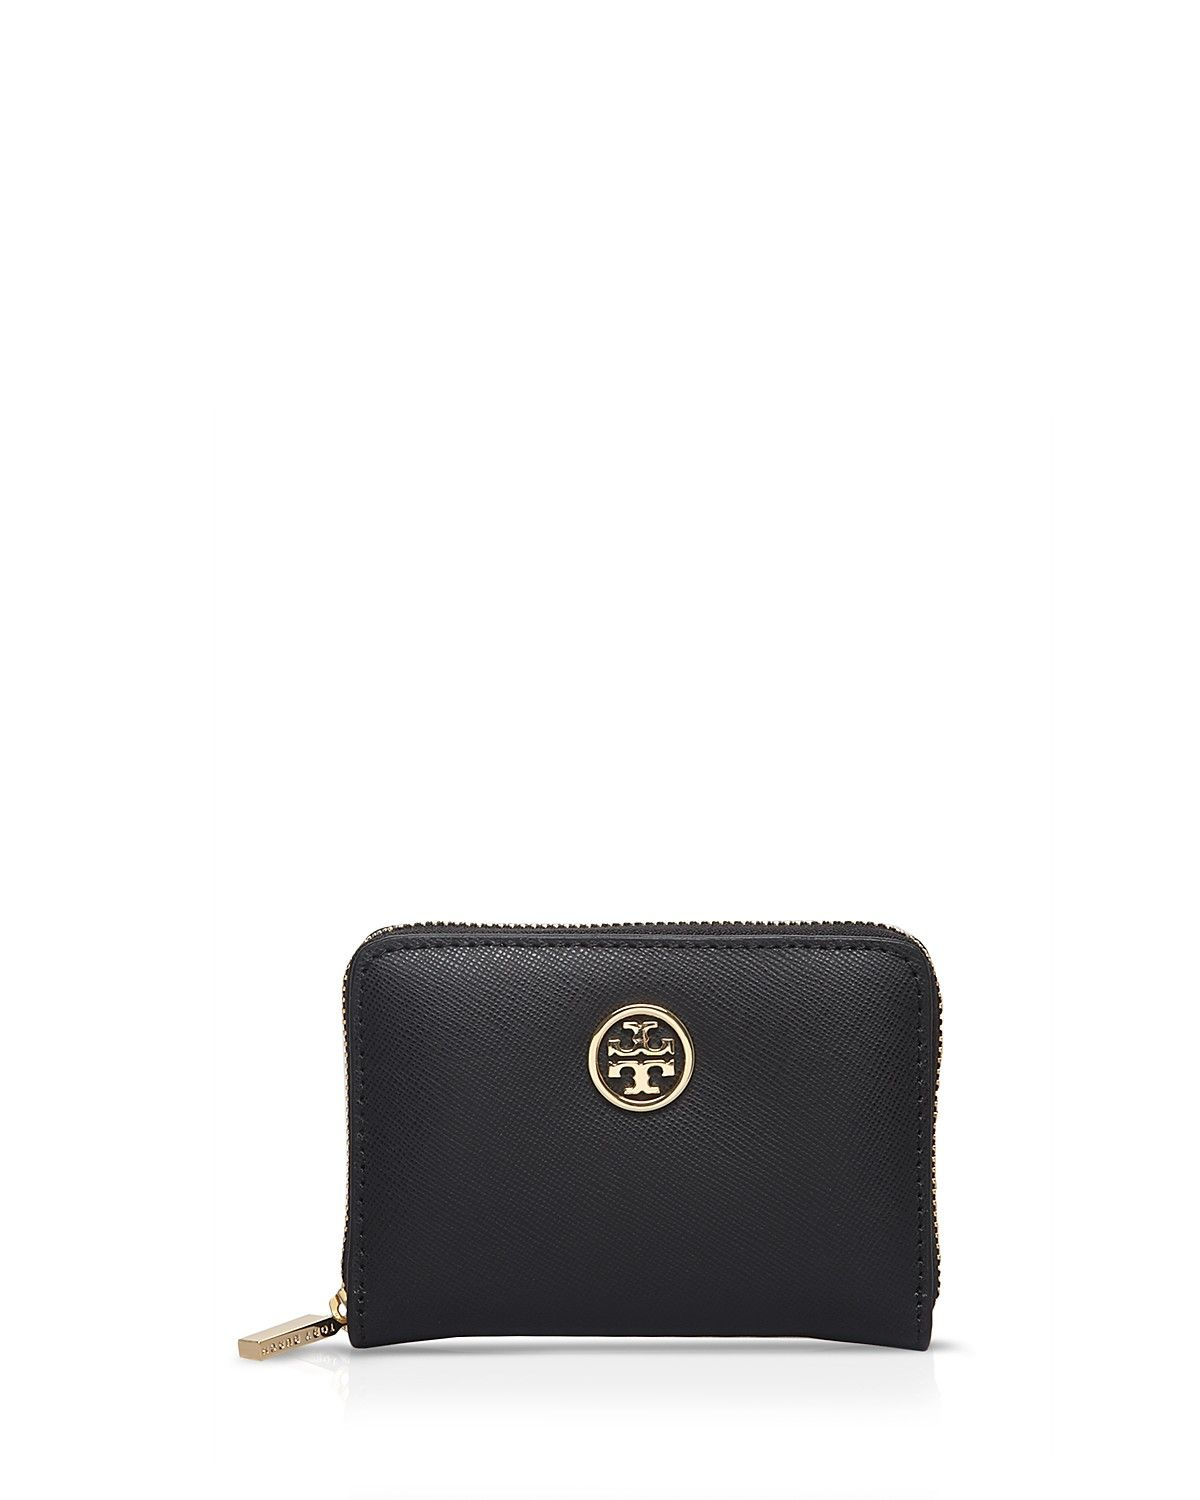 Tory Burch Coin Case - Robinson Zip | Bloomingdale's